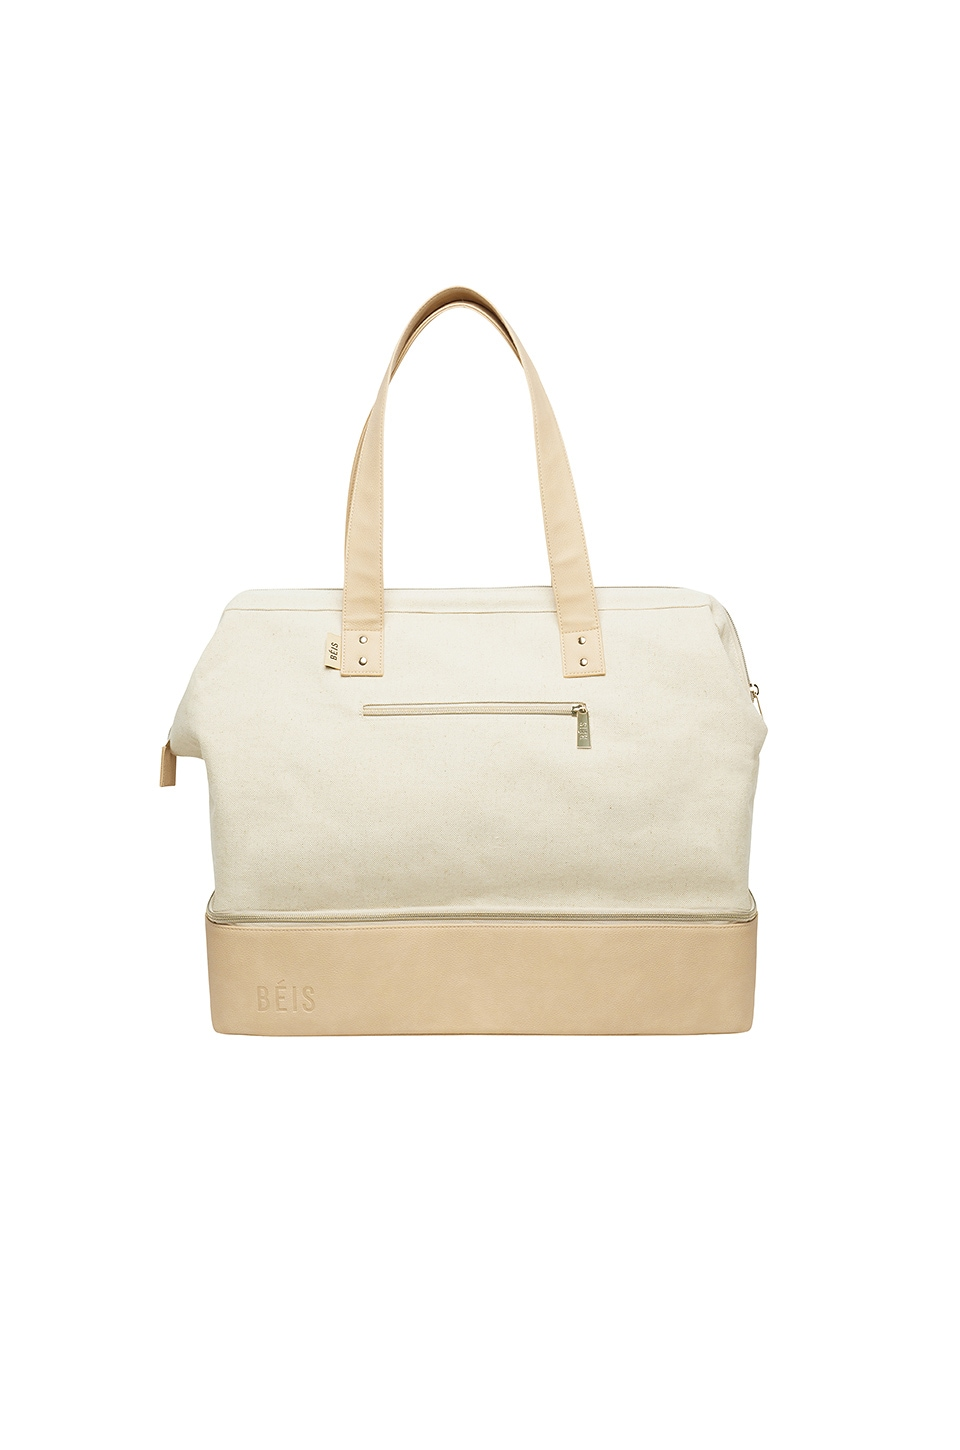 BEIS The Weekend Bag in Beige